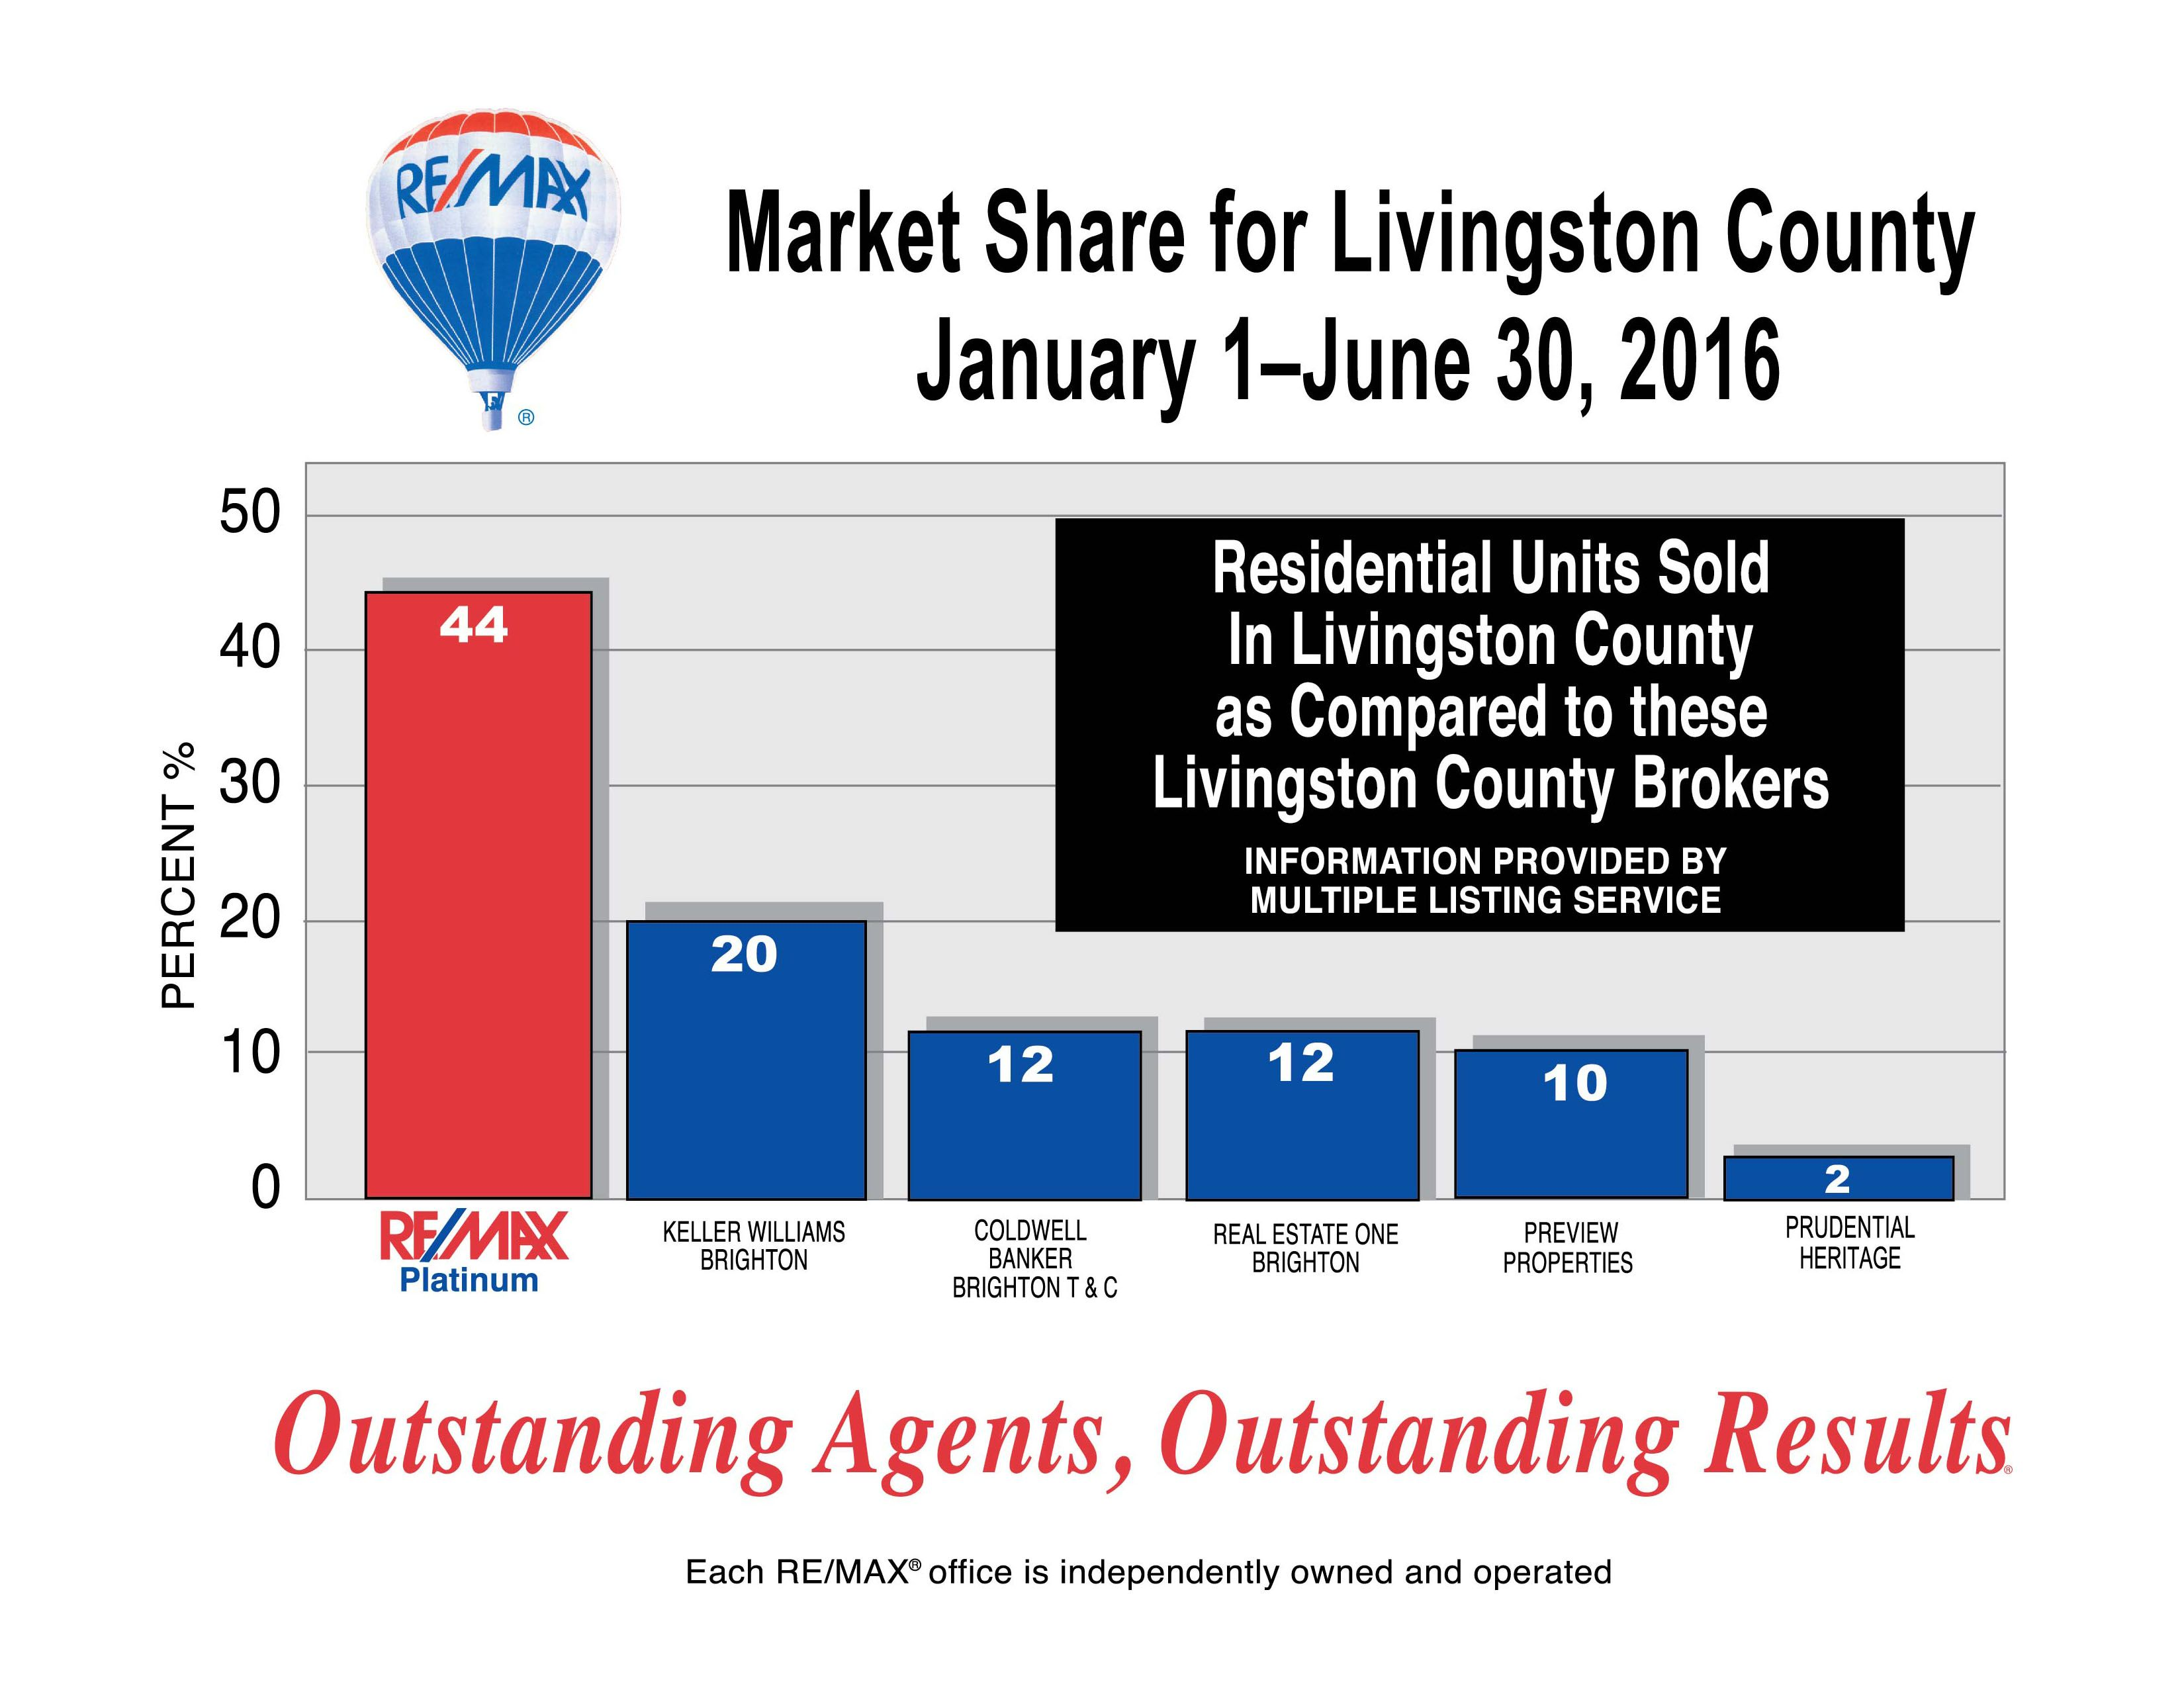 Re Max Platinum Market Share Report January Through June 2016 Ytd Livingston County Real Estate One Remax